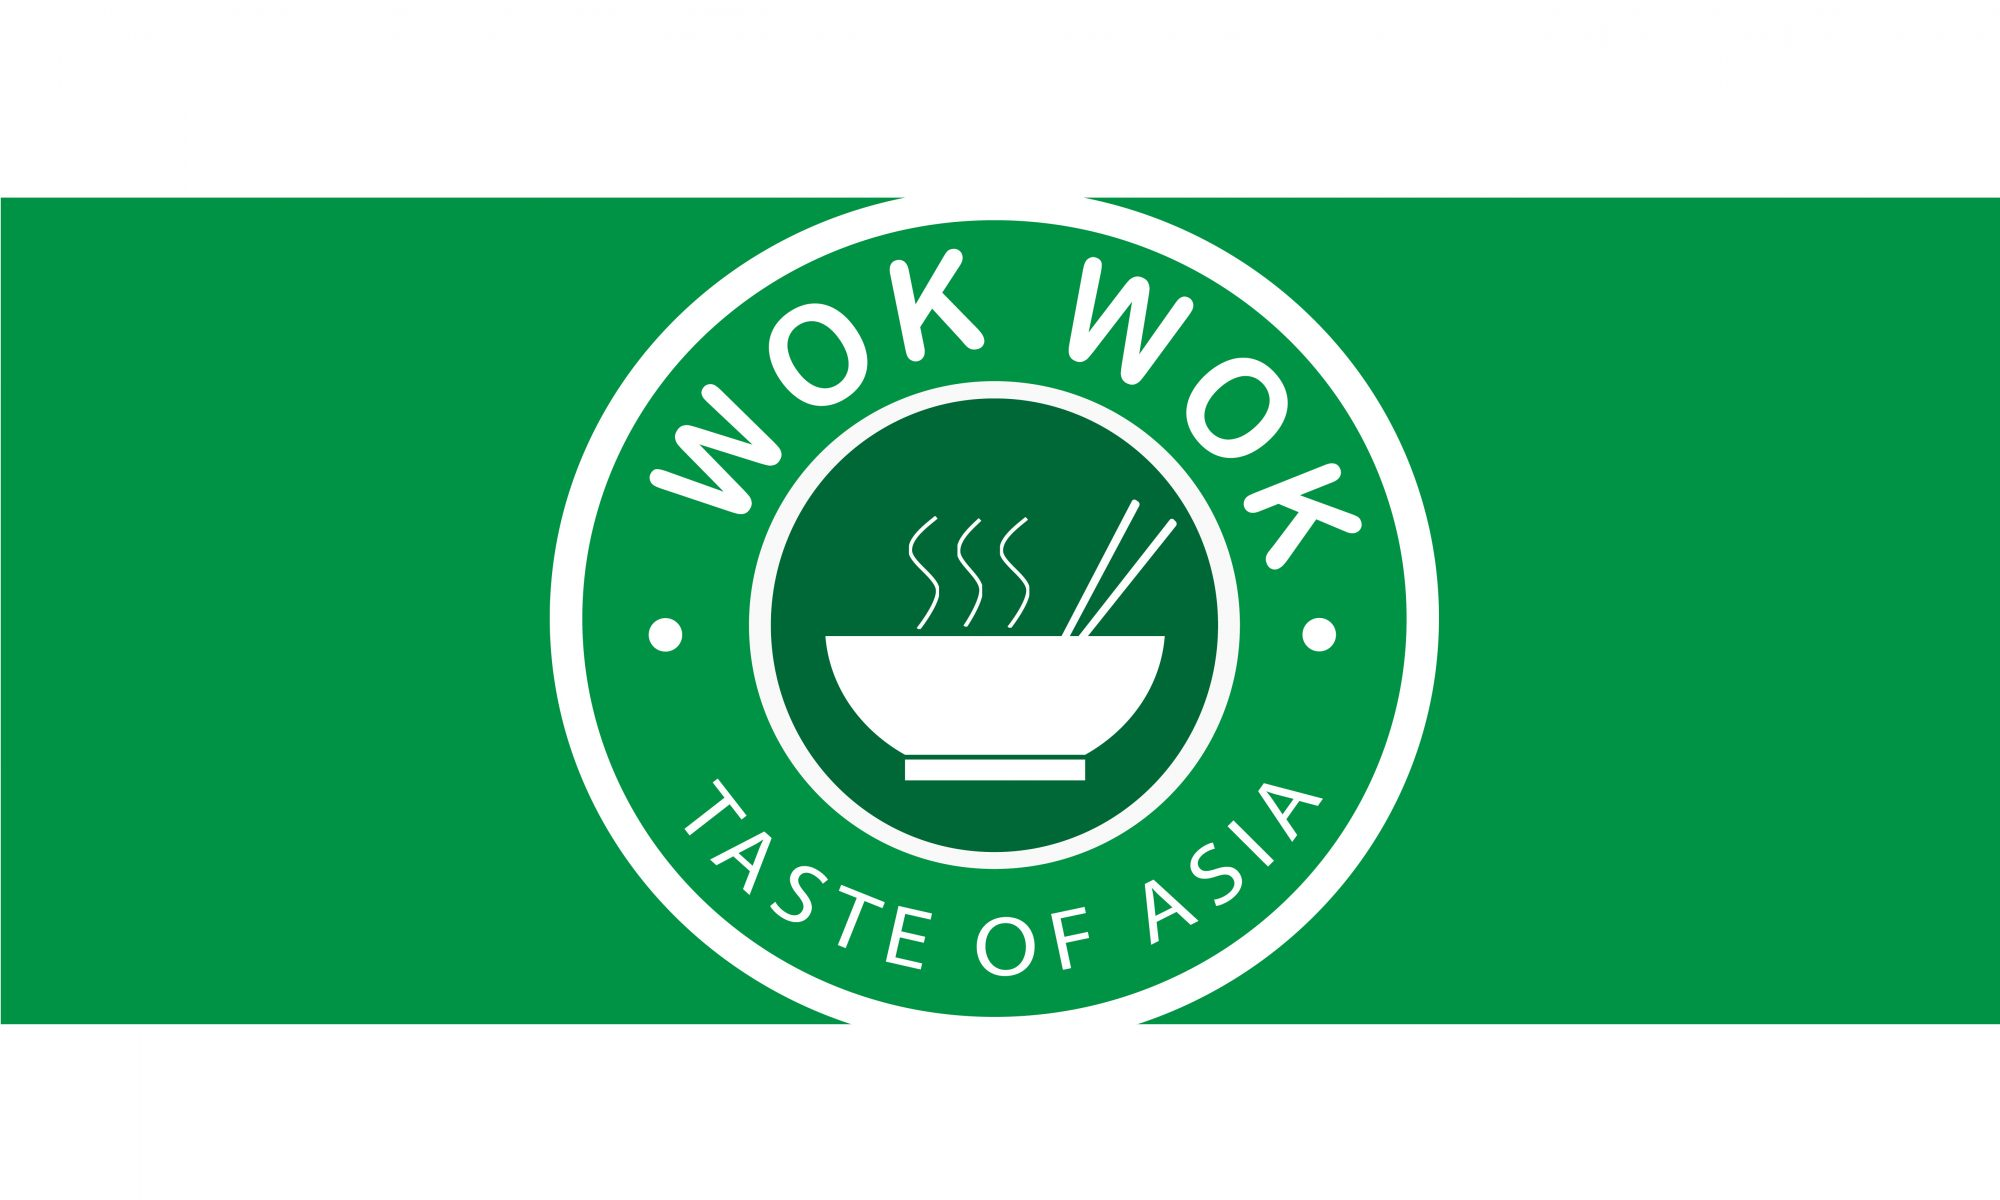 welcome to Wok Wok restaurant